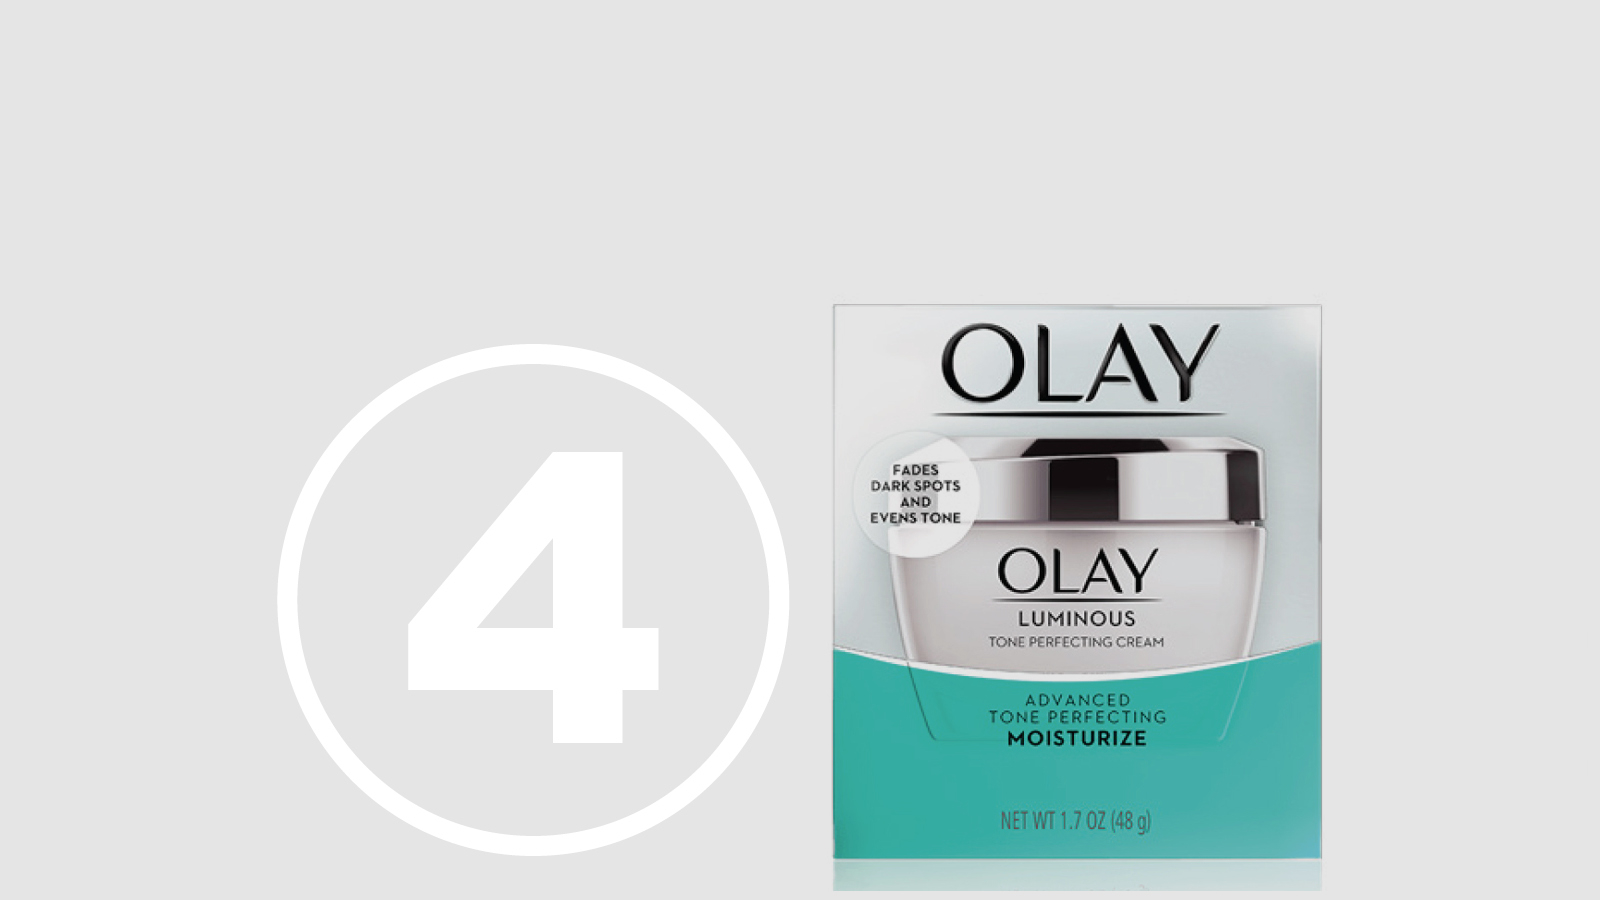 """<h5>Top Ten Most Hazardous Products</h5><h4>Olay Luminous Tone Body Lotion</h4><p>Made by Procter & Gamble and marketed for its anti-aging qualities.<br />We found <span class=""""highlight"""">15 chemicals</span> chemicals linked to chronic health effects with <span class=""""highlight"""">93.3% hidden in """"fragrance.""""</span></p>"""